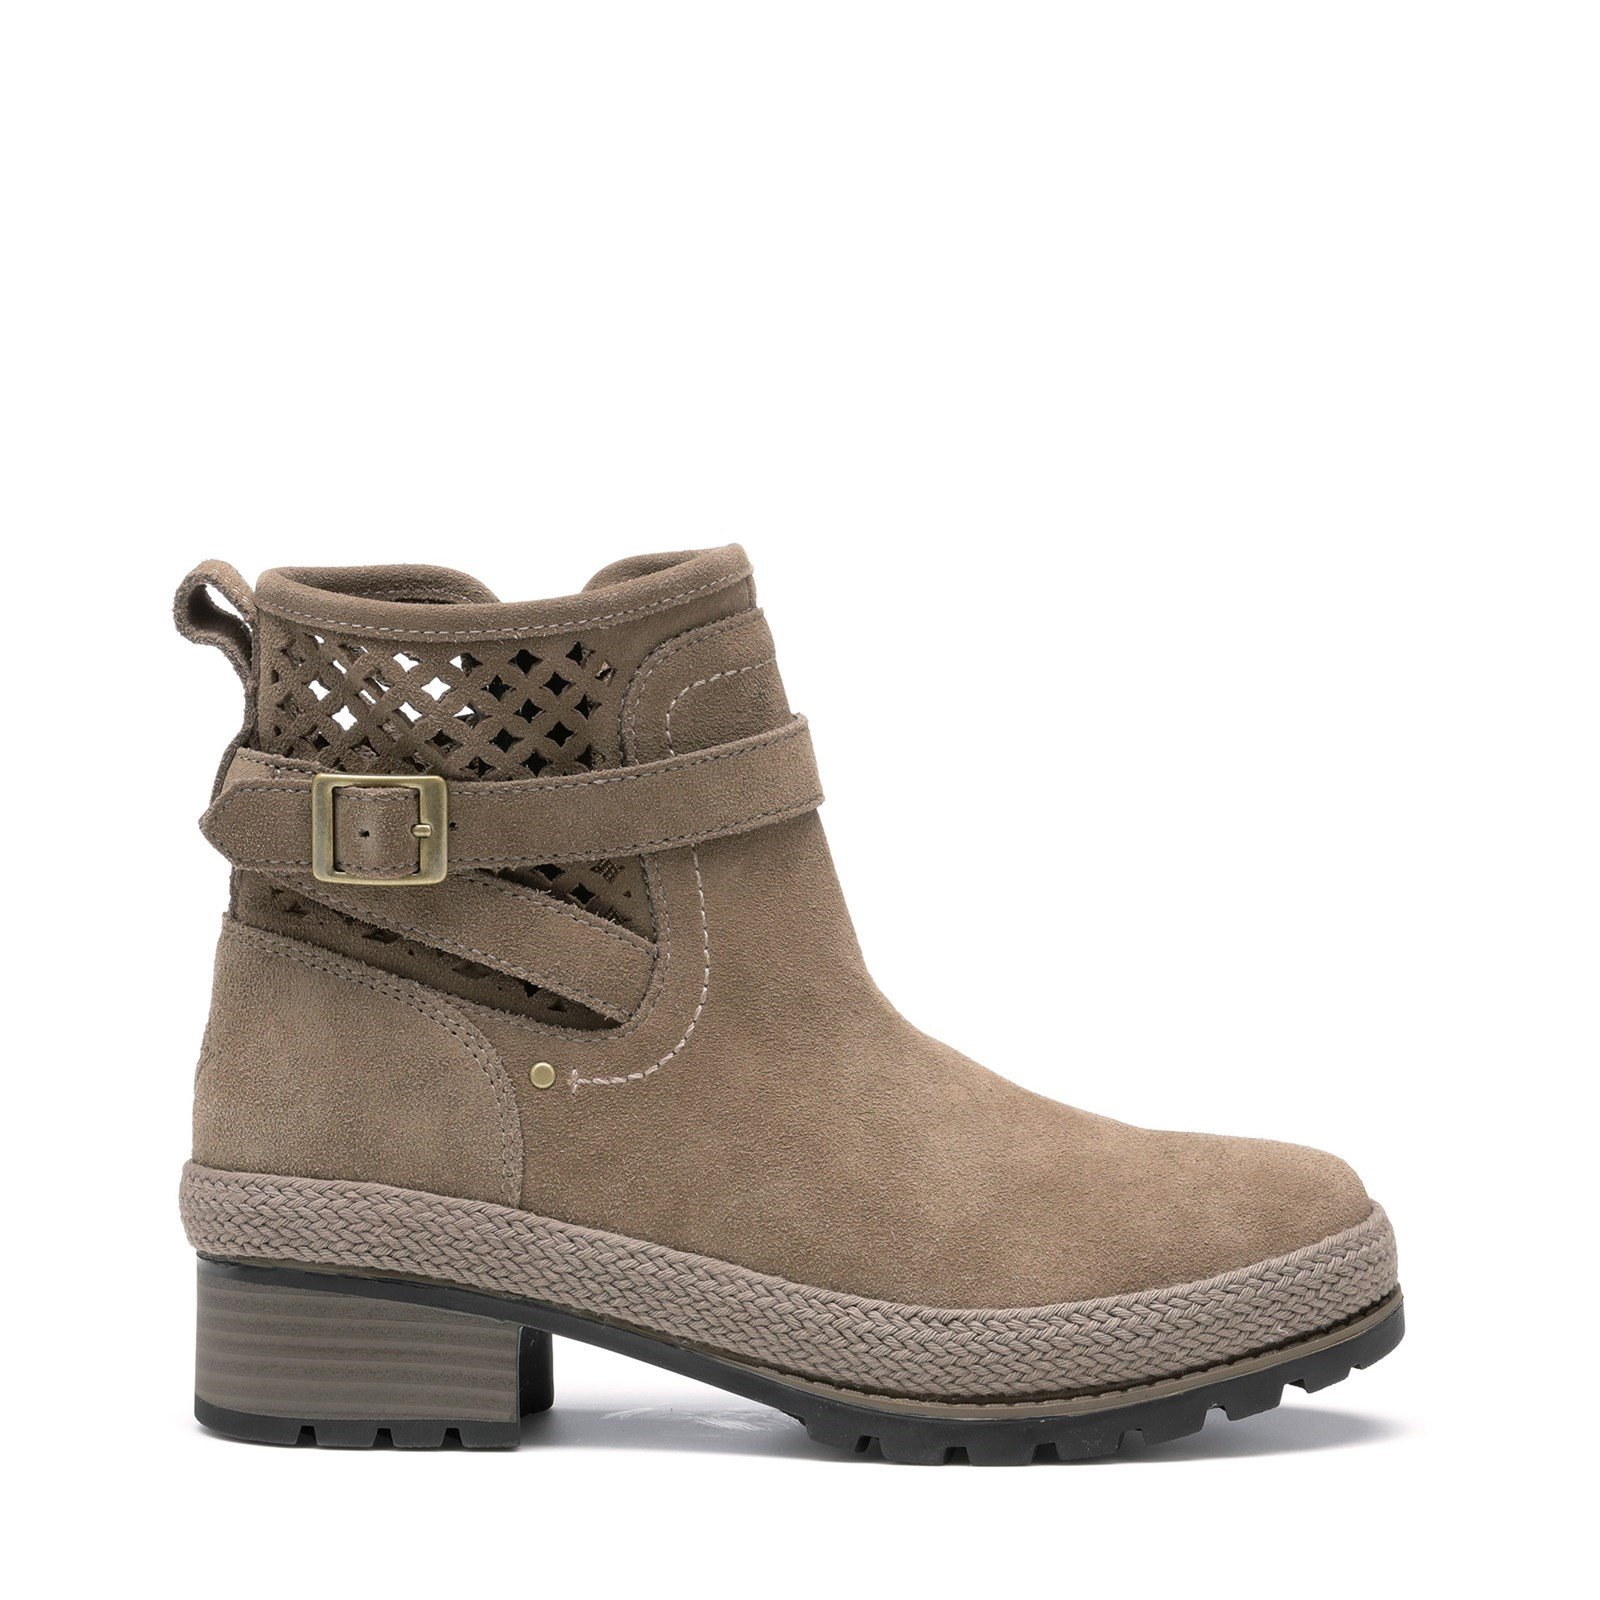 Muck Boots Women's Liberty Perforated Leather Boots Various Colours 31814 - Grey 5.5